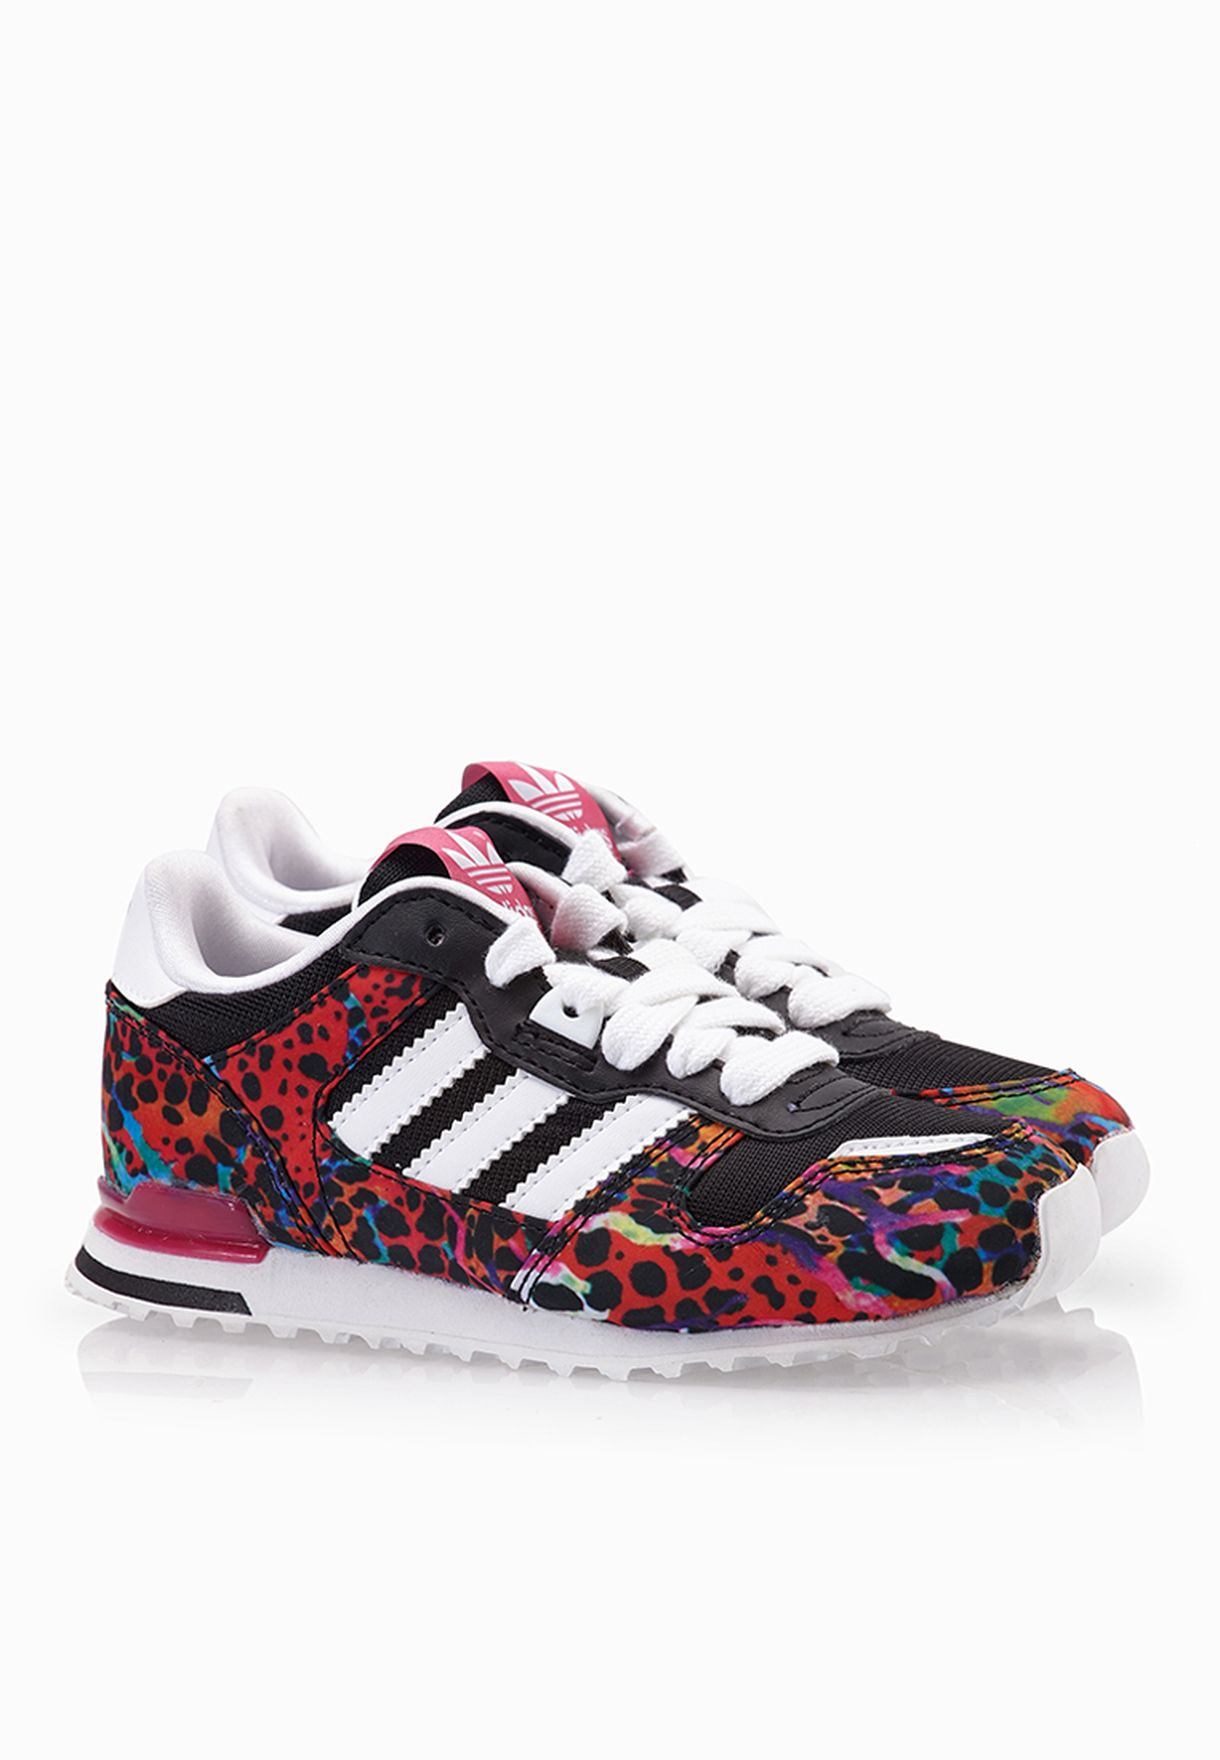 38eda8298 ... coupon code for shop adidas originals prints zx 700 kids m17016 for kids  in saudi ad478sh75wzw